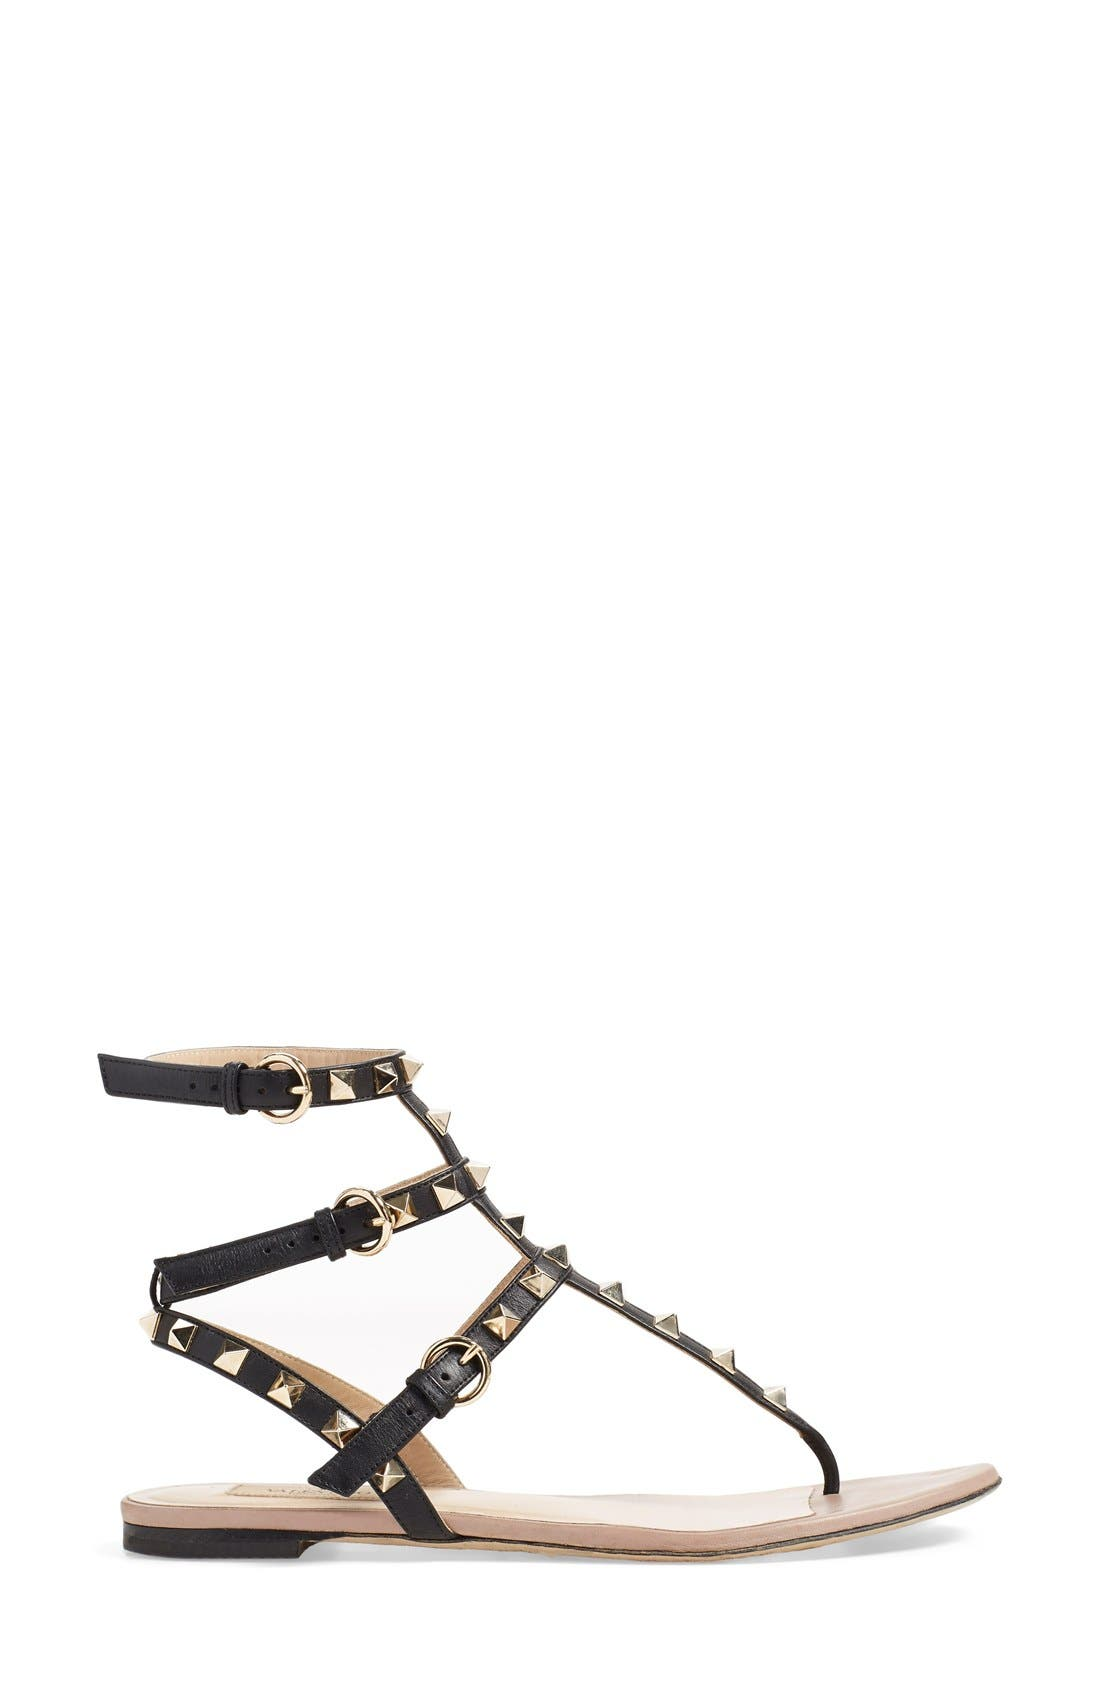 'Rockstud' Sandal,                             Alternate thumbnail 3, color,                             BLACK LEATHER